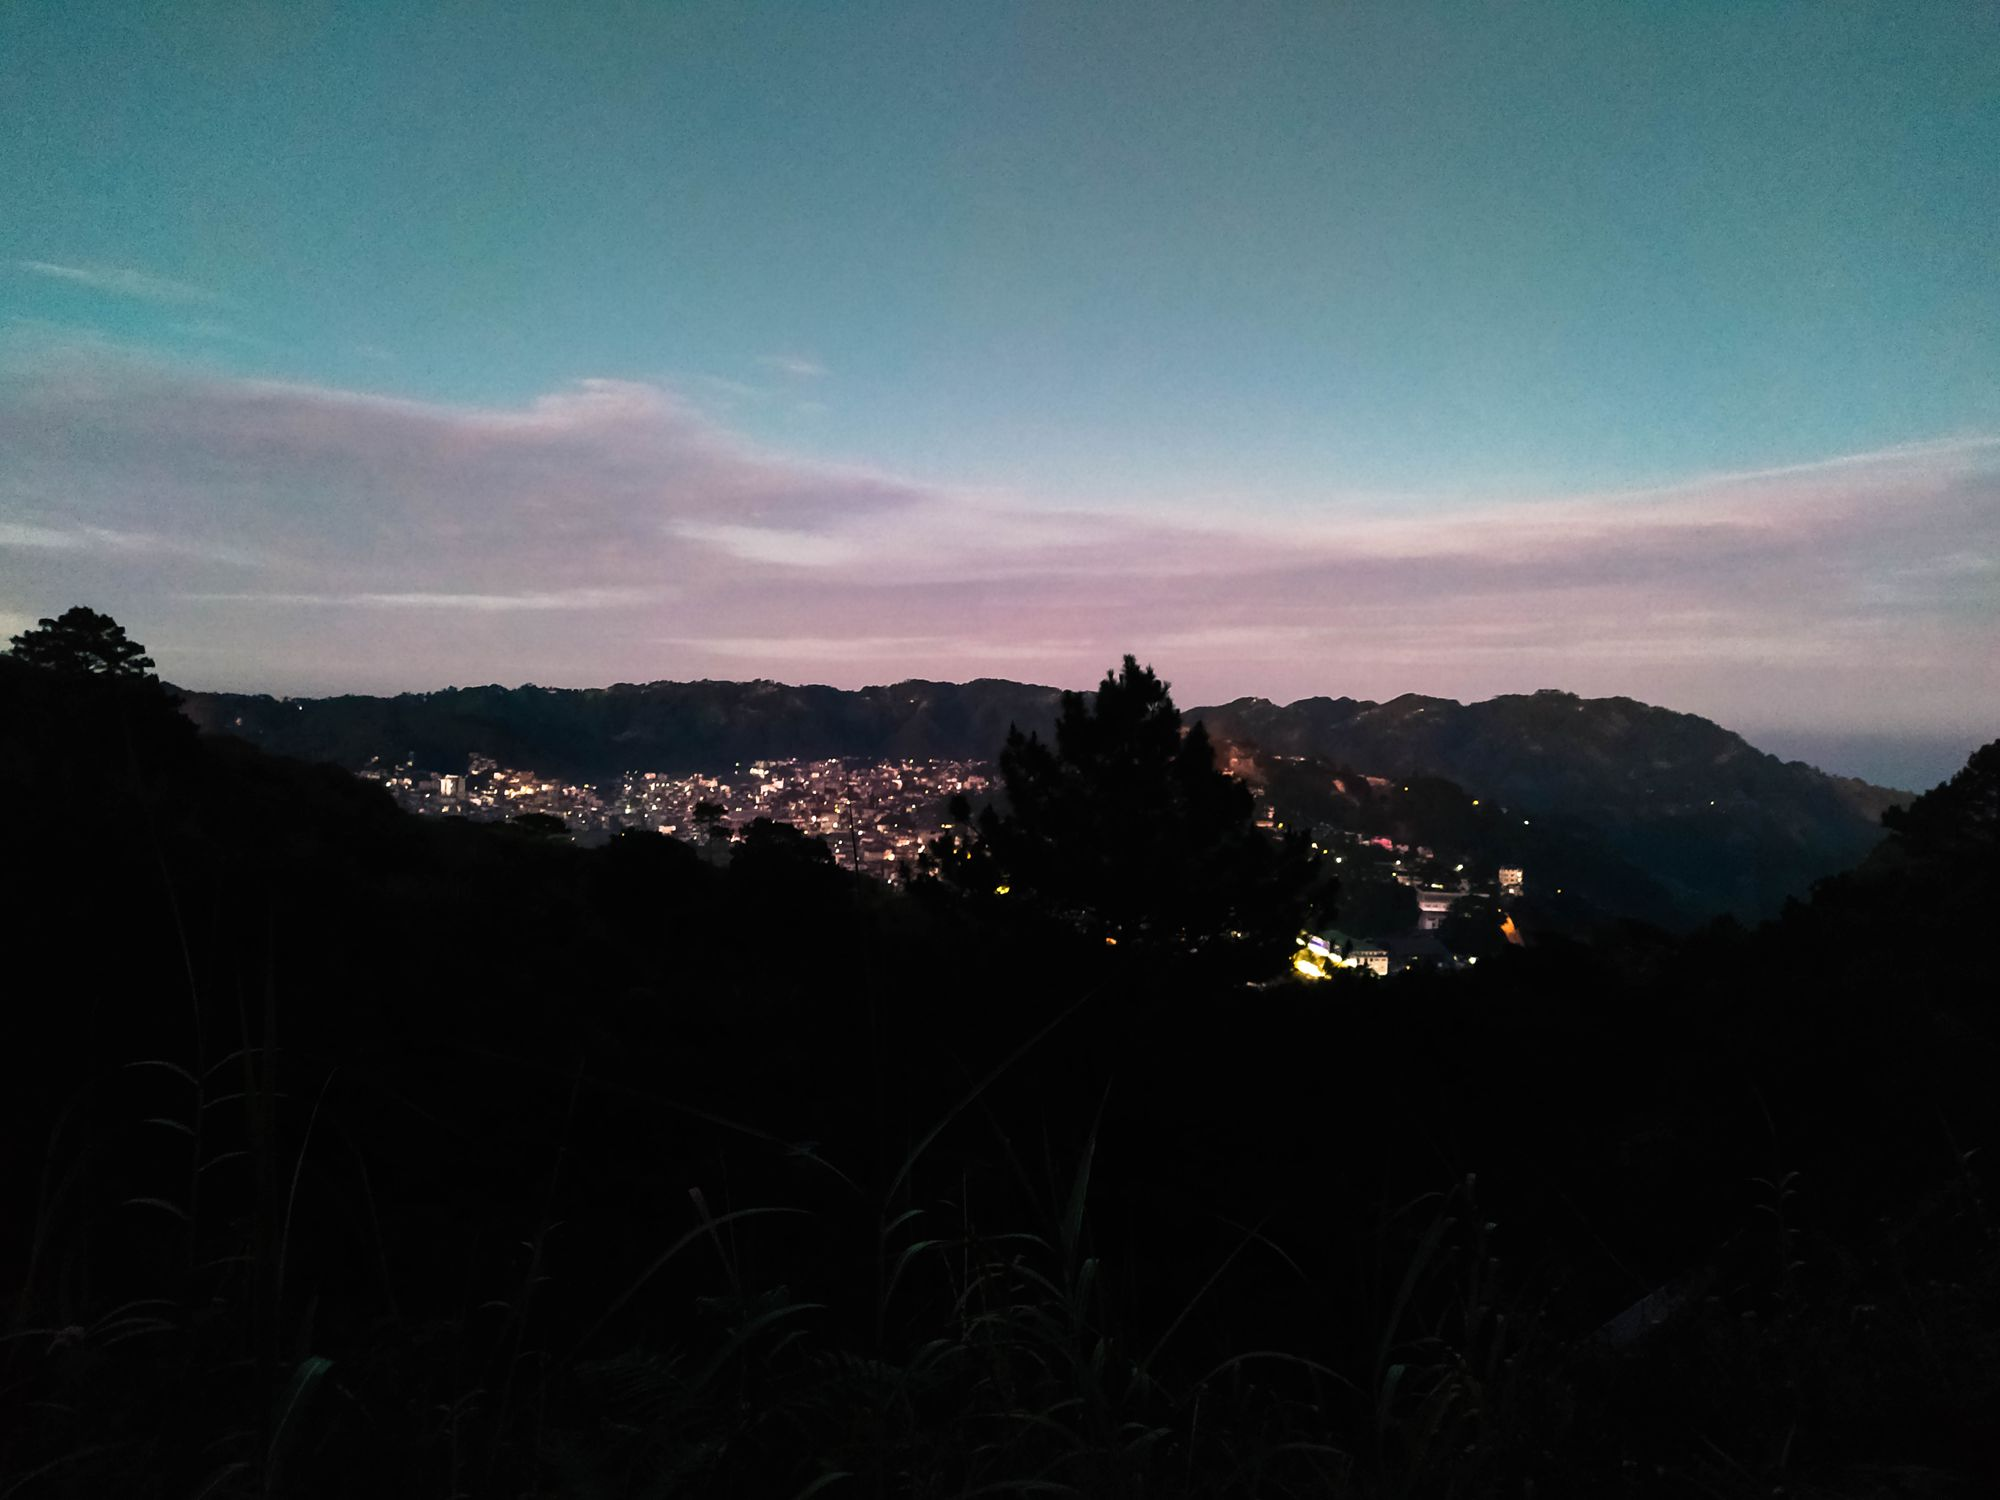 Valley town with many twinkling lights beneath a dawn sky at Mount Kalugong